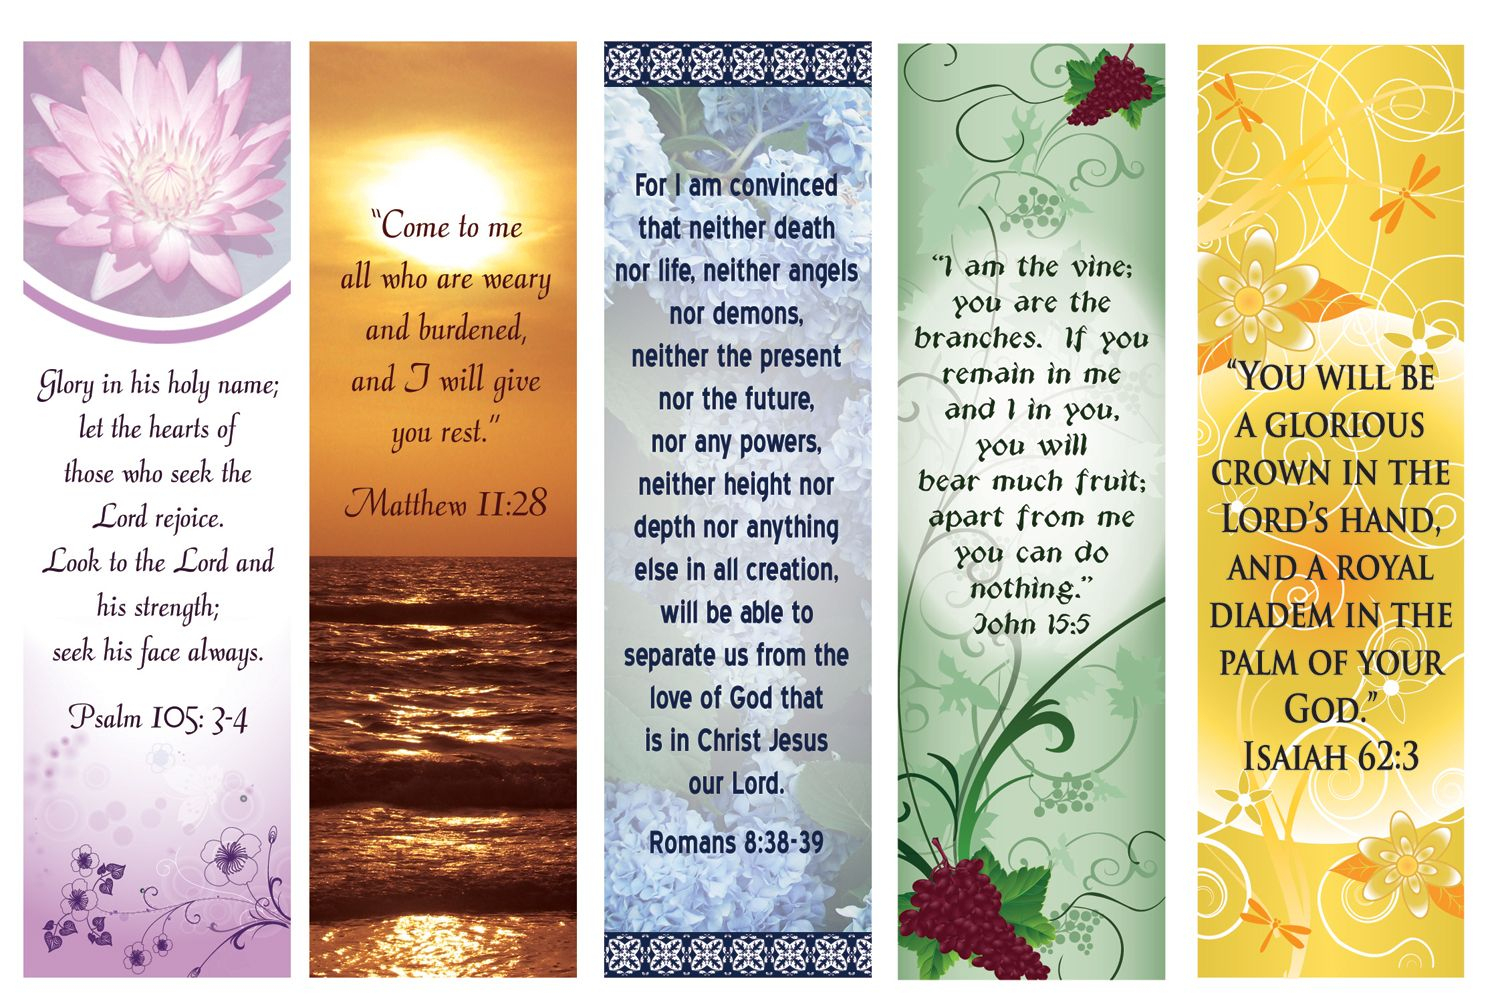 Free Printable Bookmarks With Bible Verses   Bookmarks   Pinterest - Free Printable Religious Easter Bookmarks